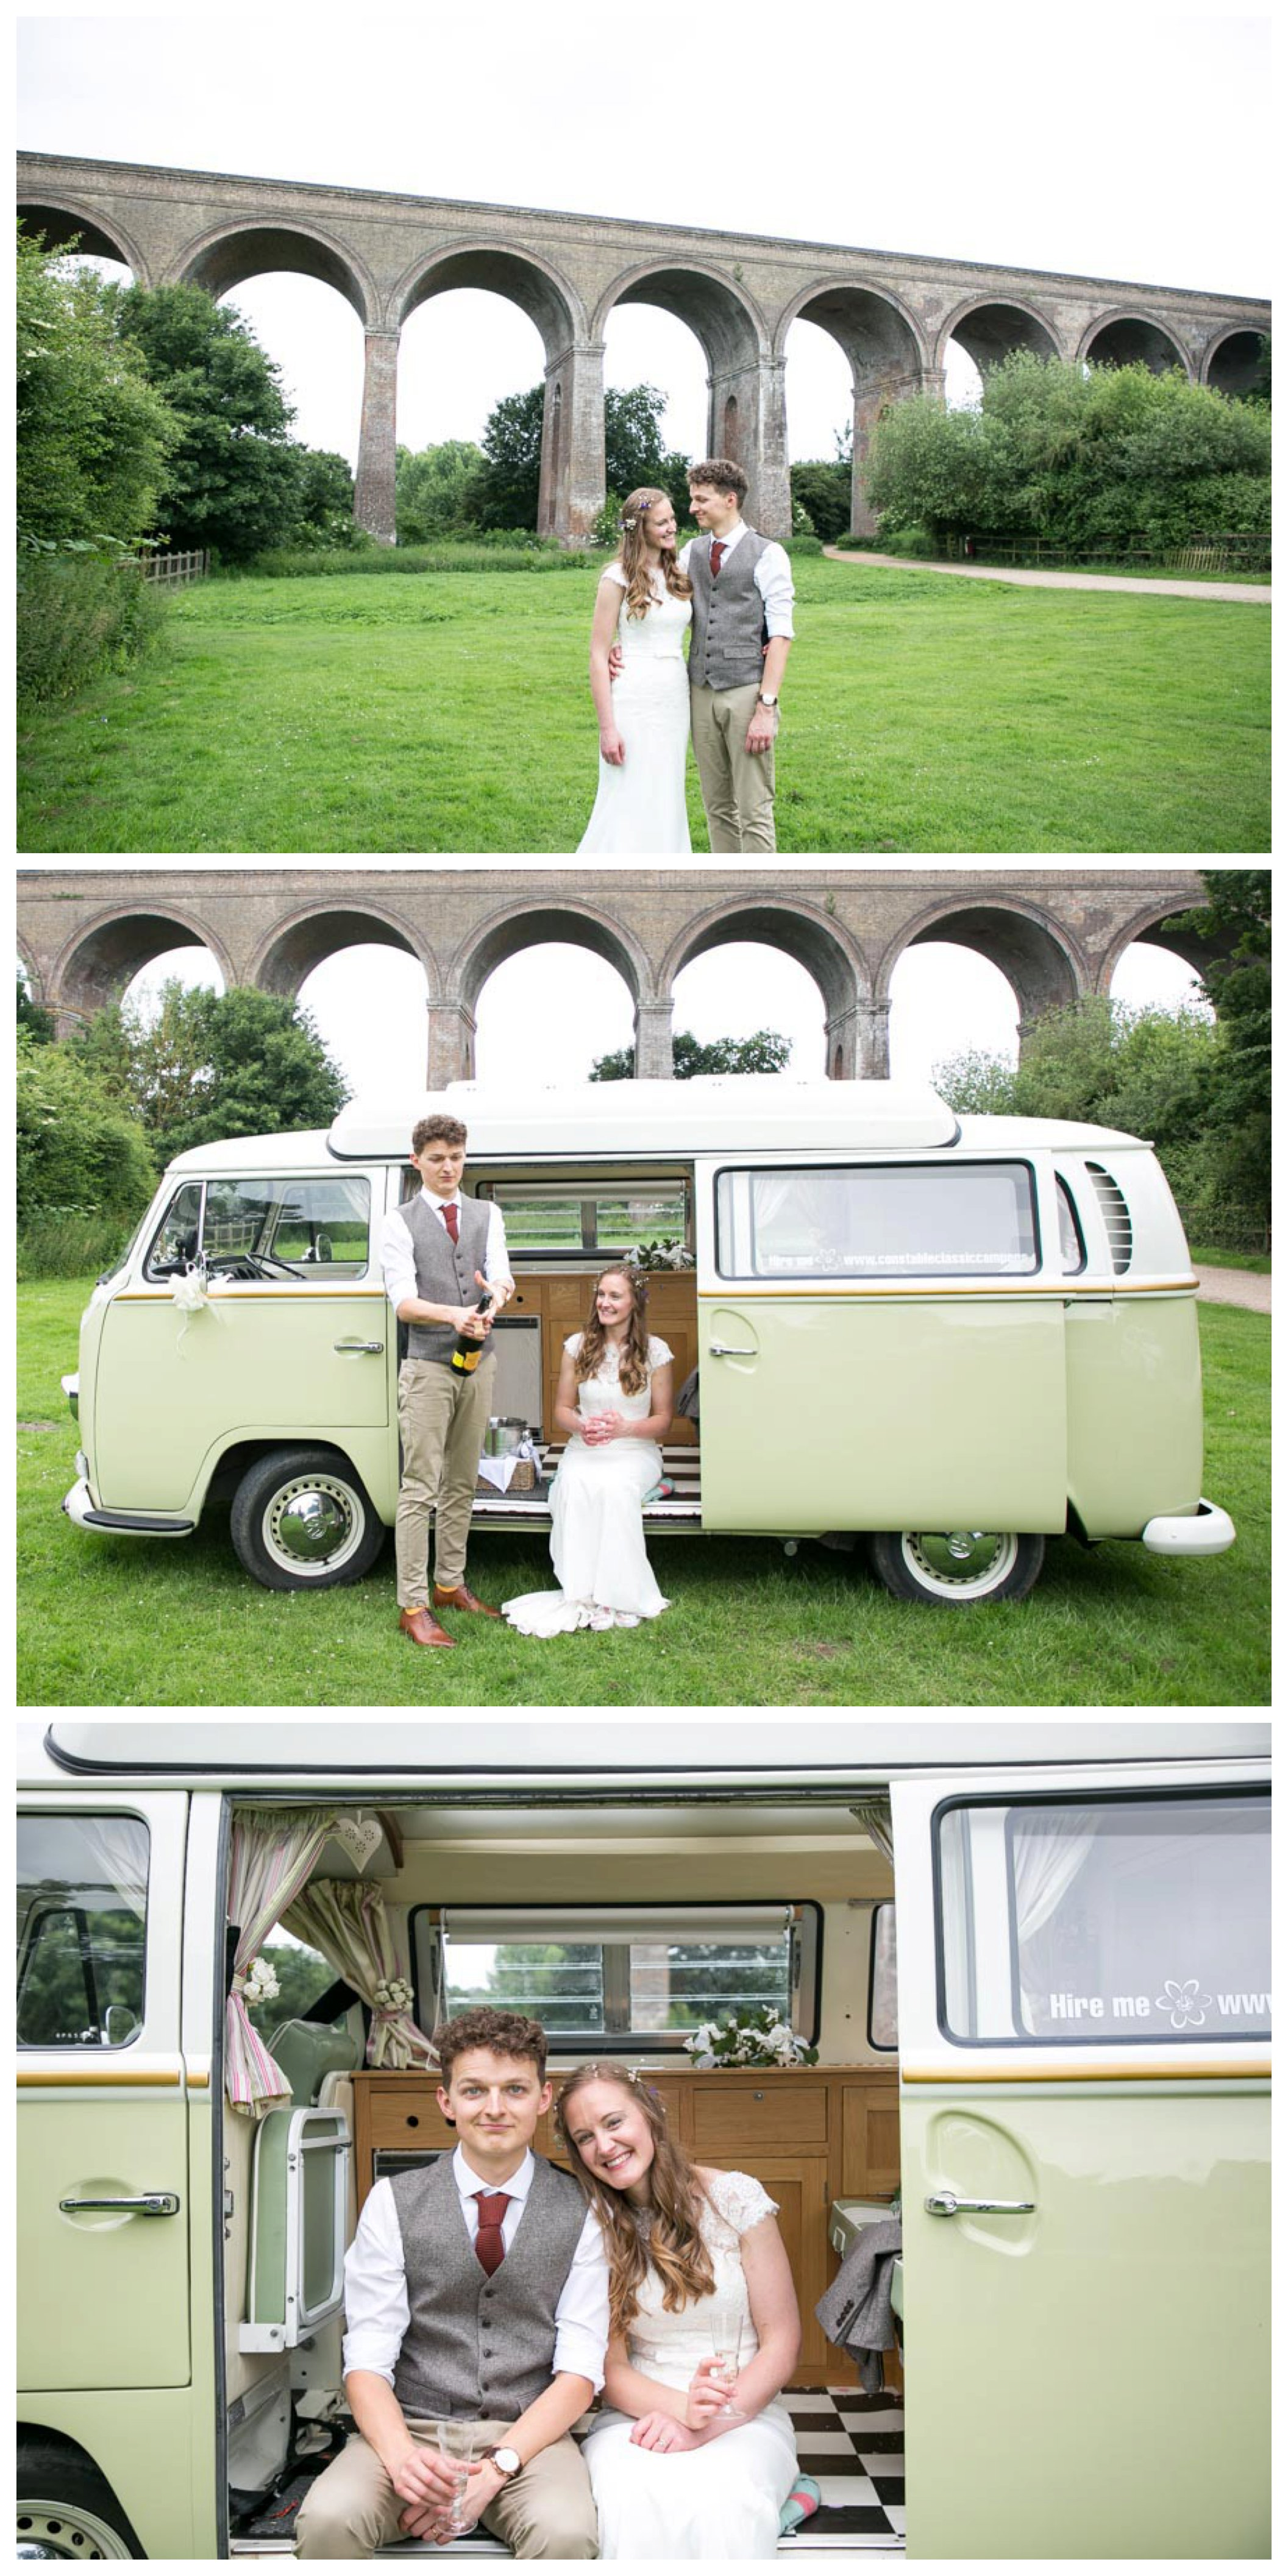 just married couple at Chappel viaduct with it in background, with vintage VW camper van